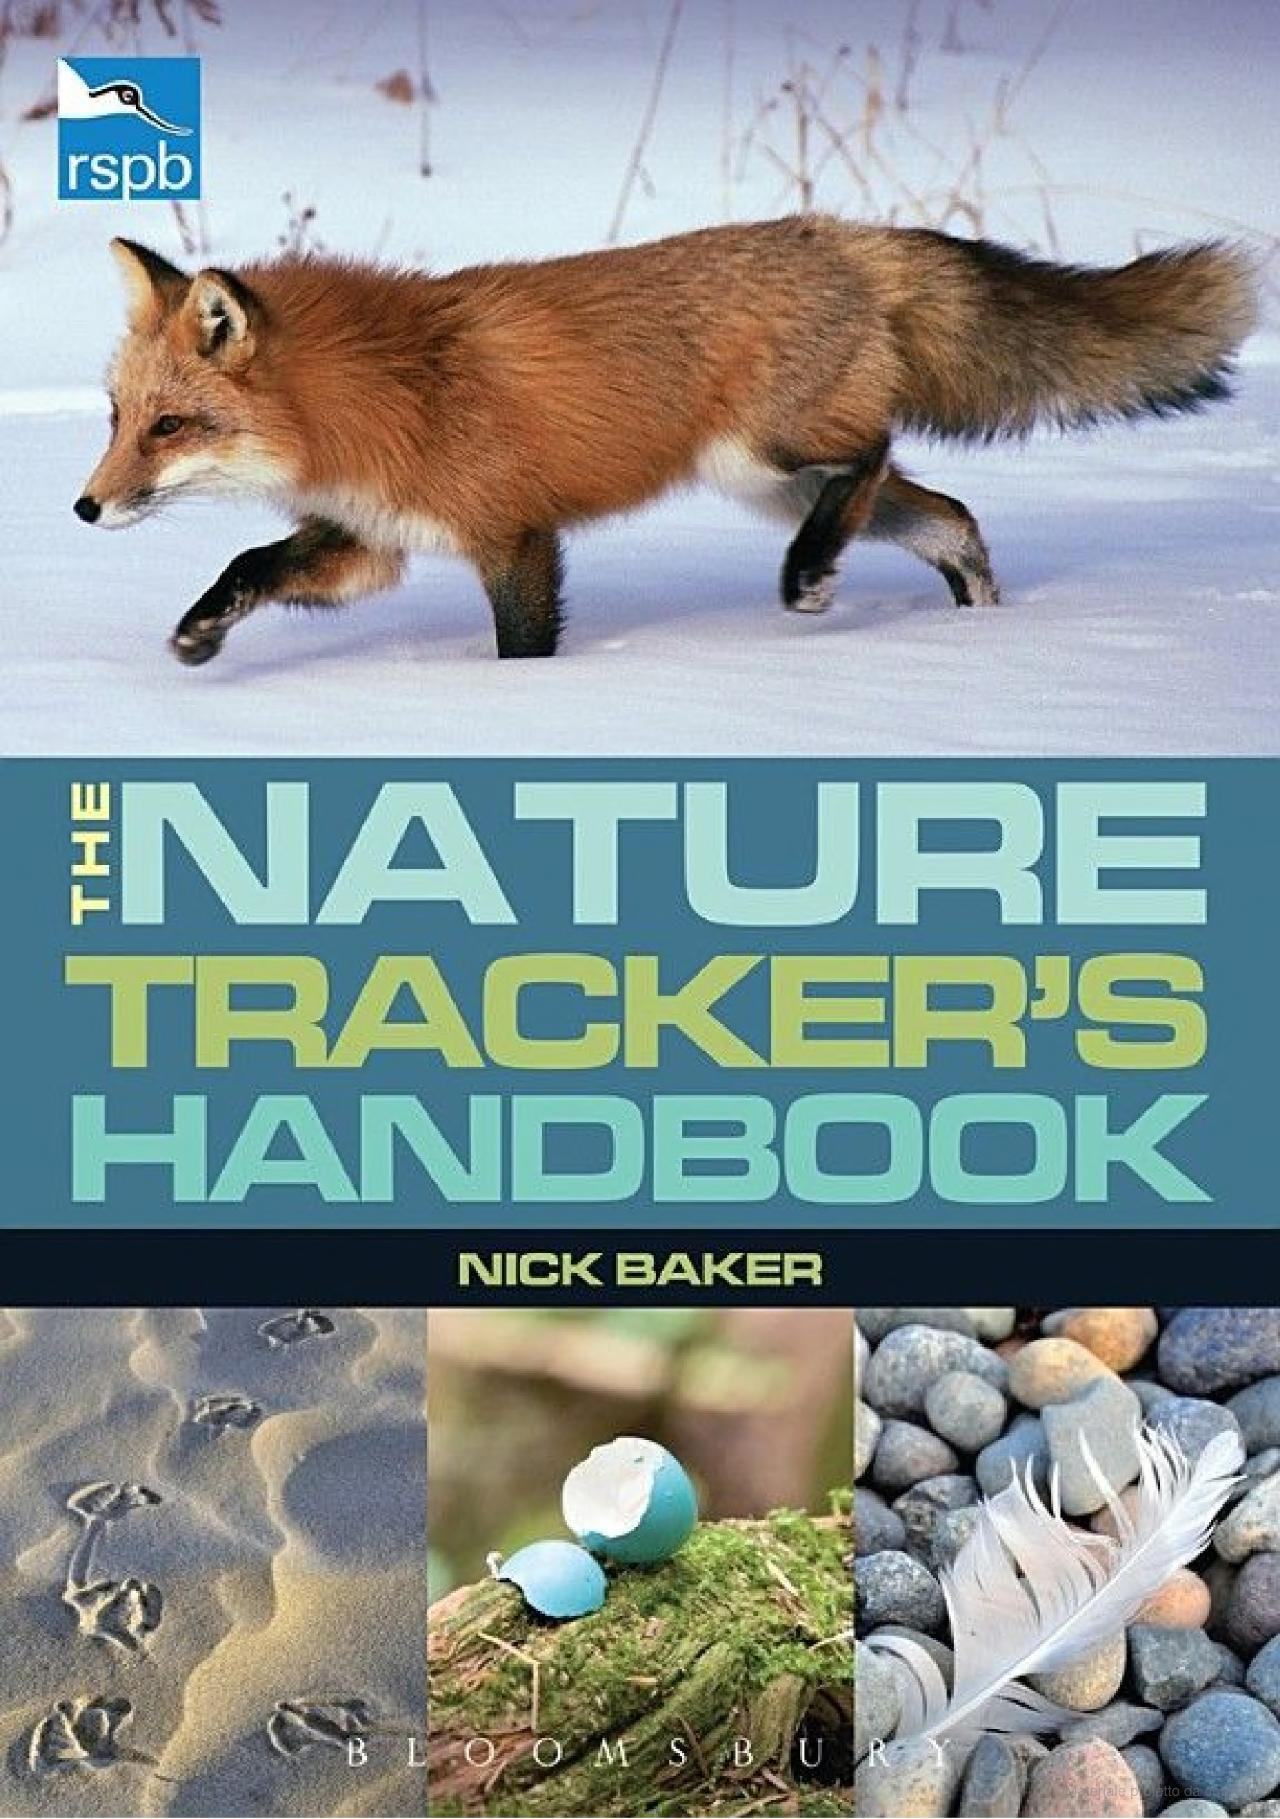 RSPB Nature Tracker's Handbook By Nick Baker (UK)